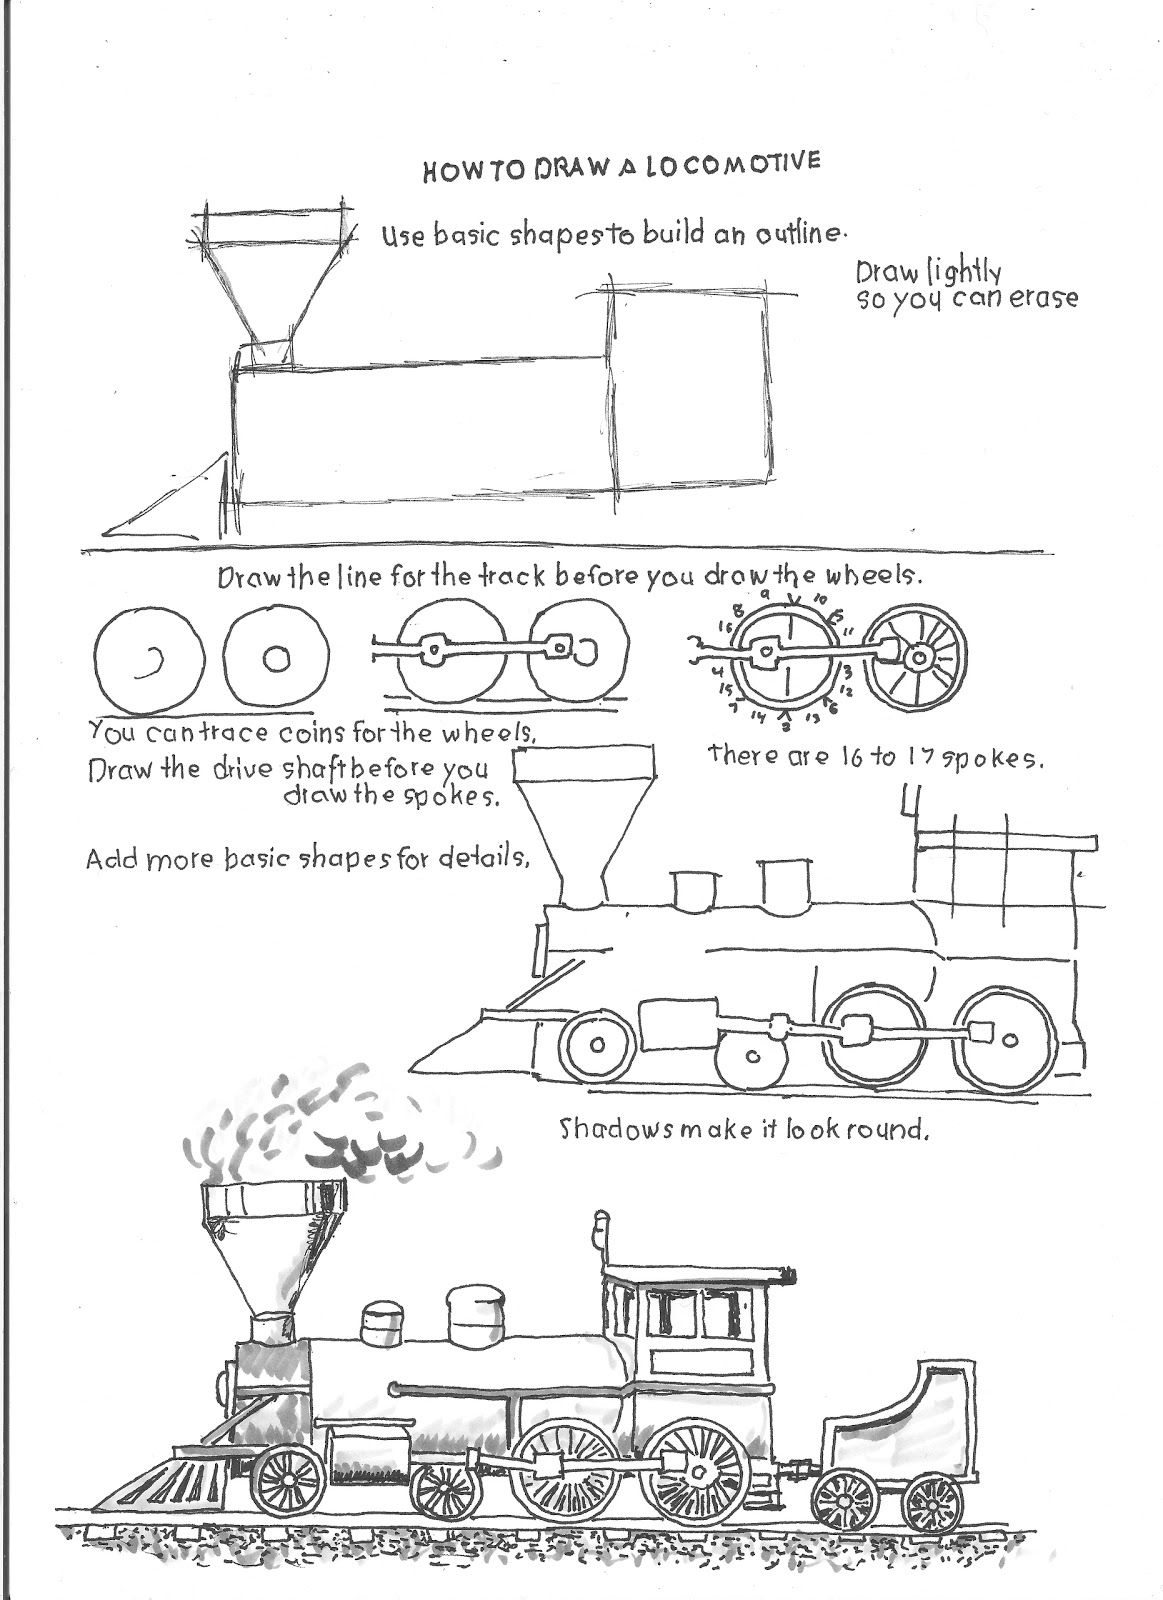 How To Draw A Locomotive Art Lesson Worksheet With